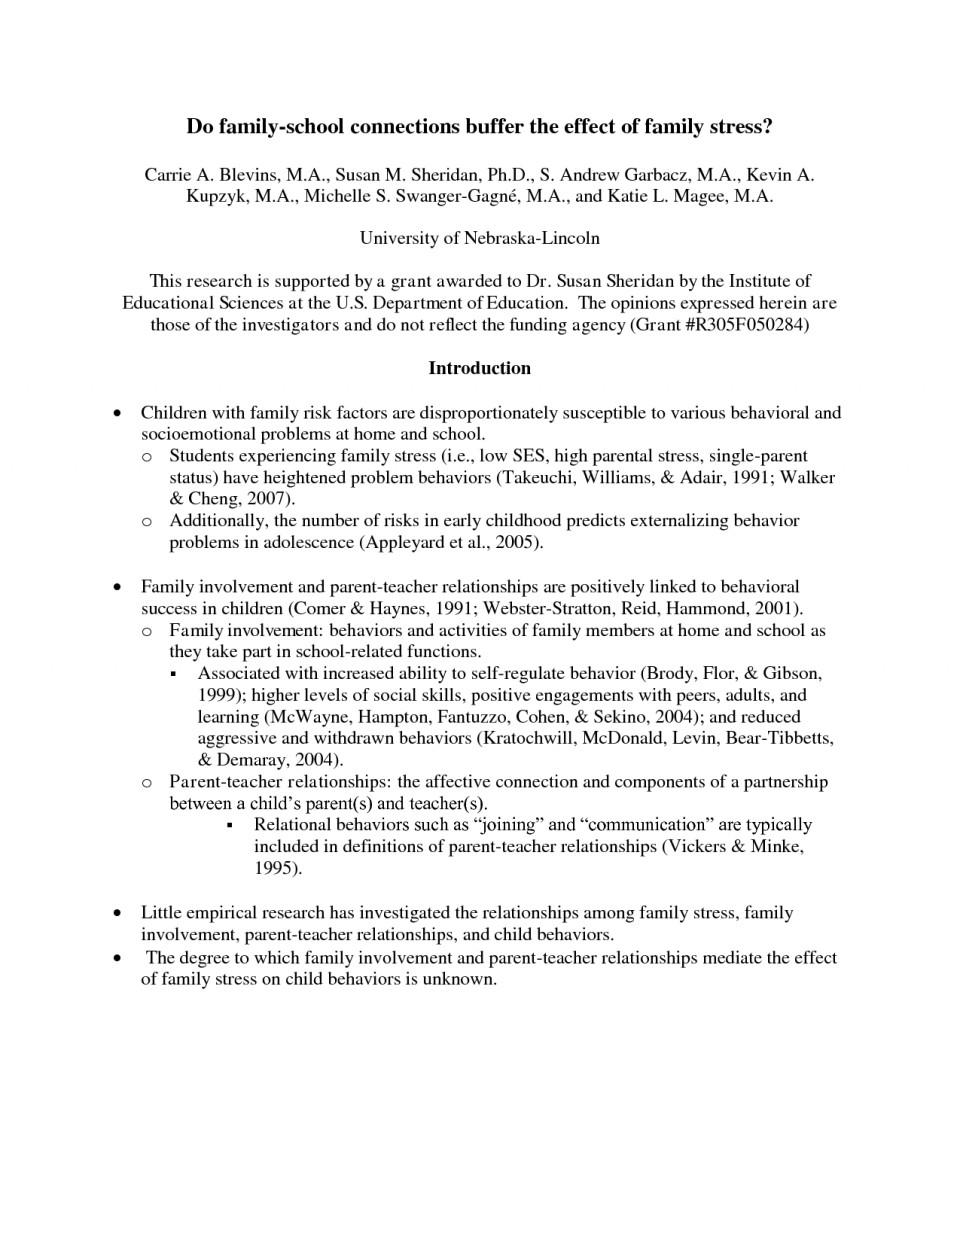 007 Components Of Research Paper Apa Fascinating A In Format 960